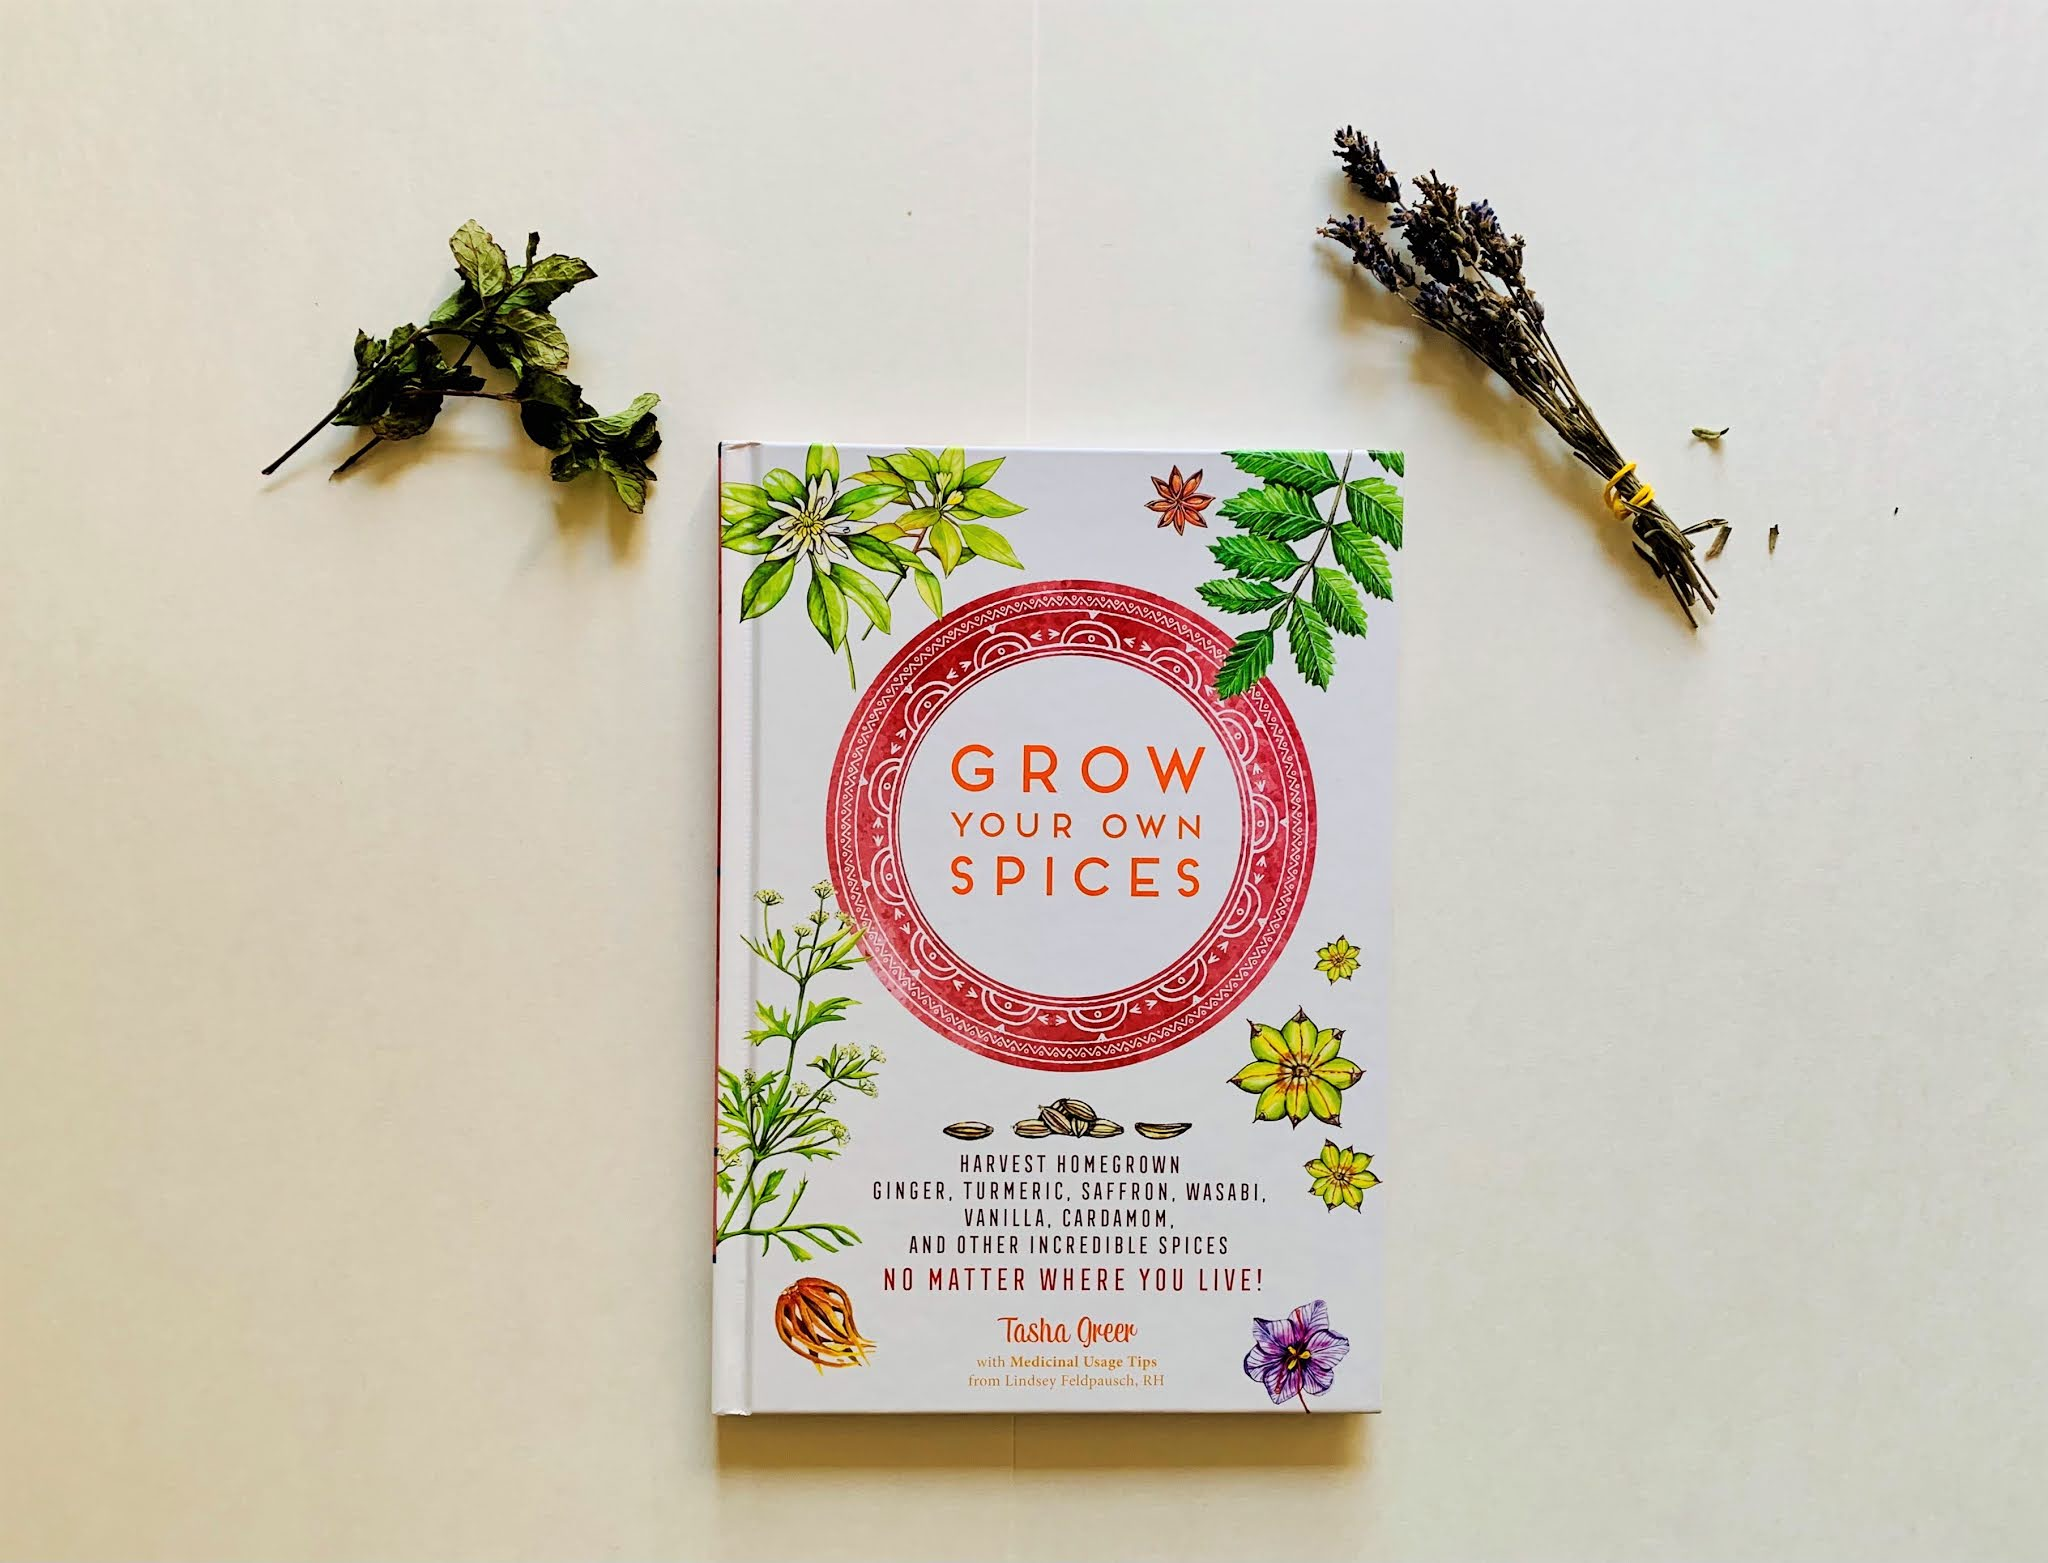 Grow your own spices book